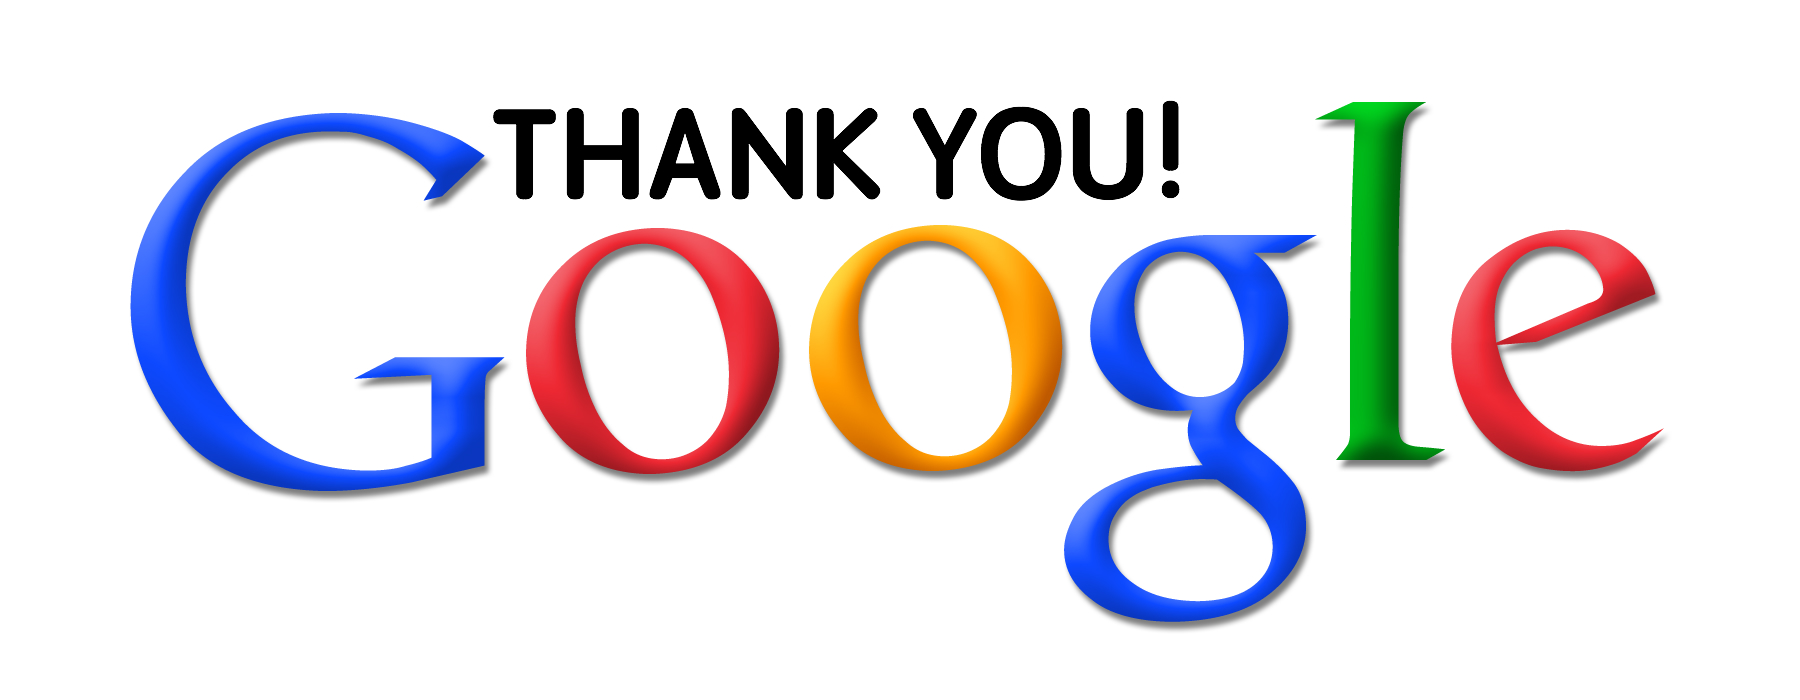 DD_Google-thank-you-google